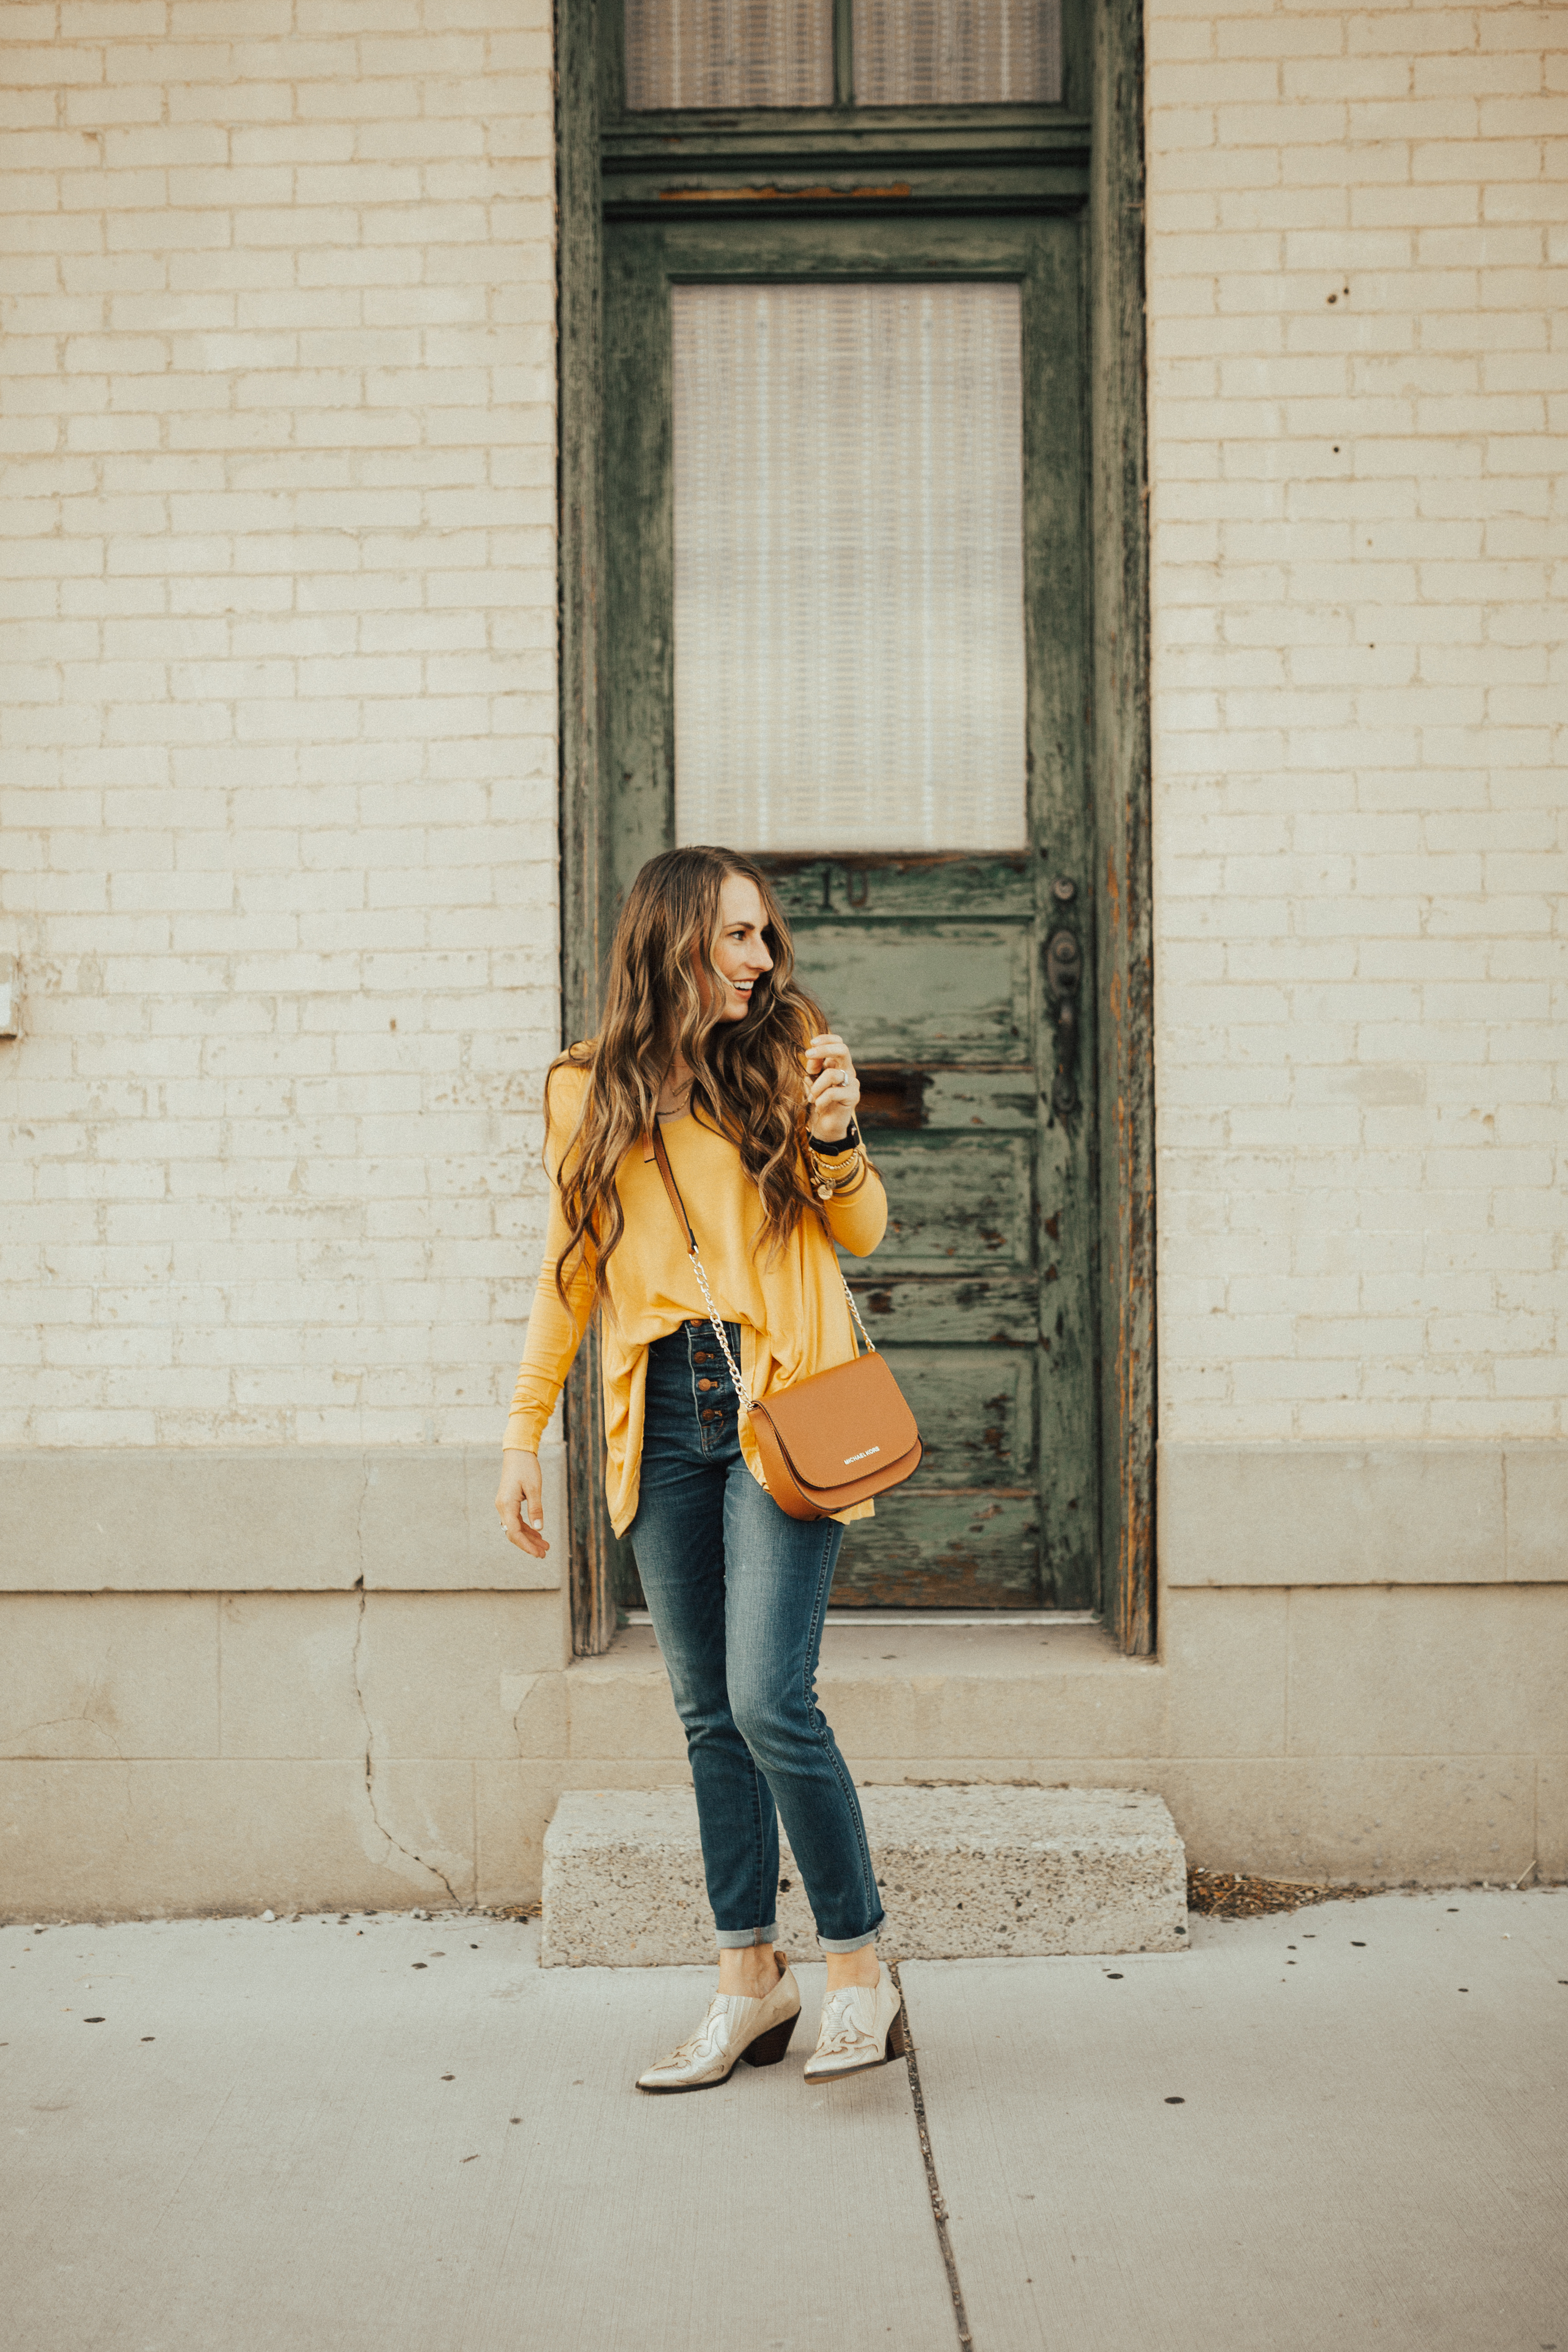 Moms lets get ready for Fall in style. Utah Style Blogger Dani Marie is sharing her top 13 mom friendly fall outfits that will keep you stylish all season long!